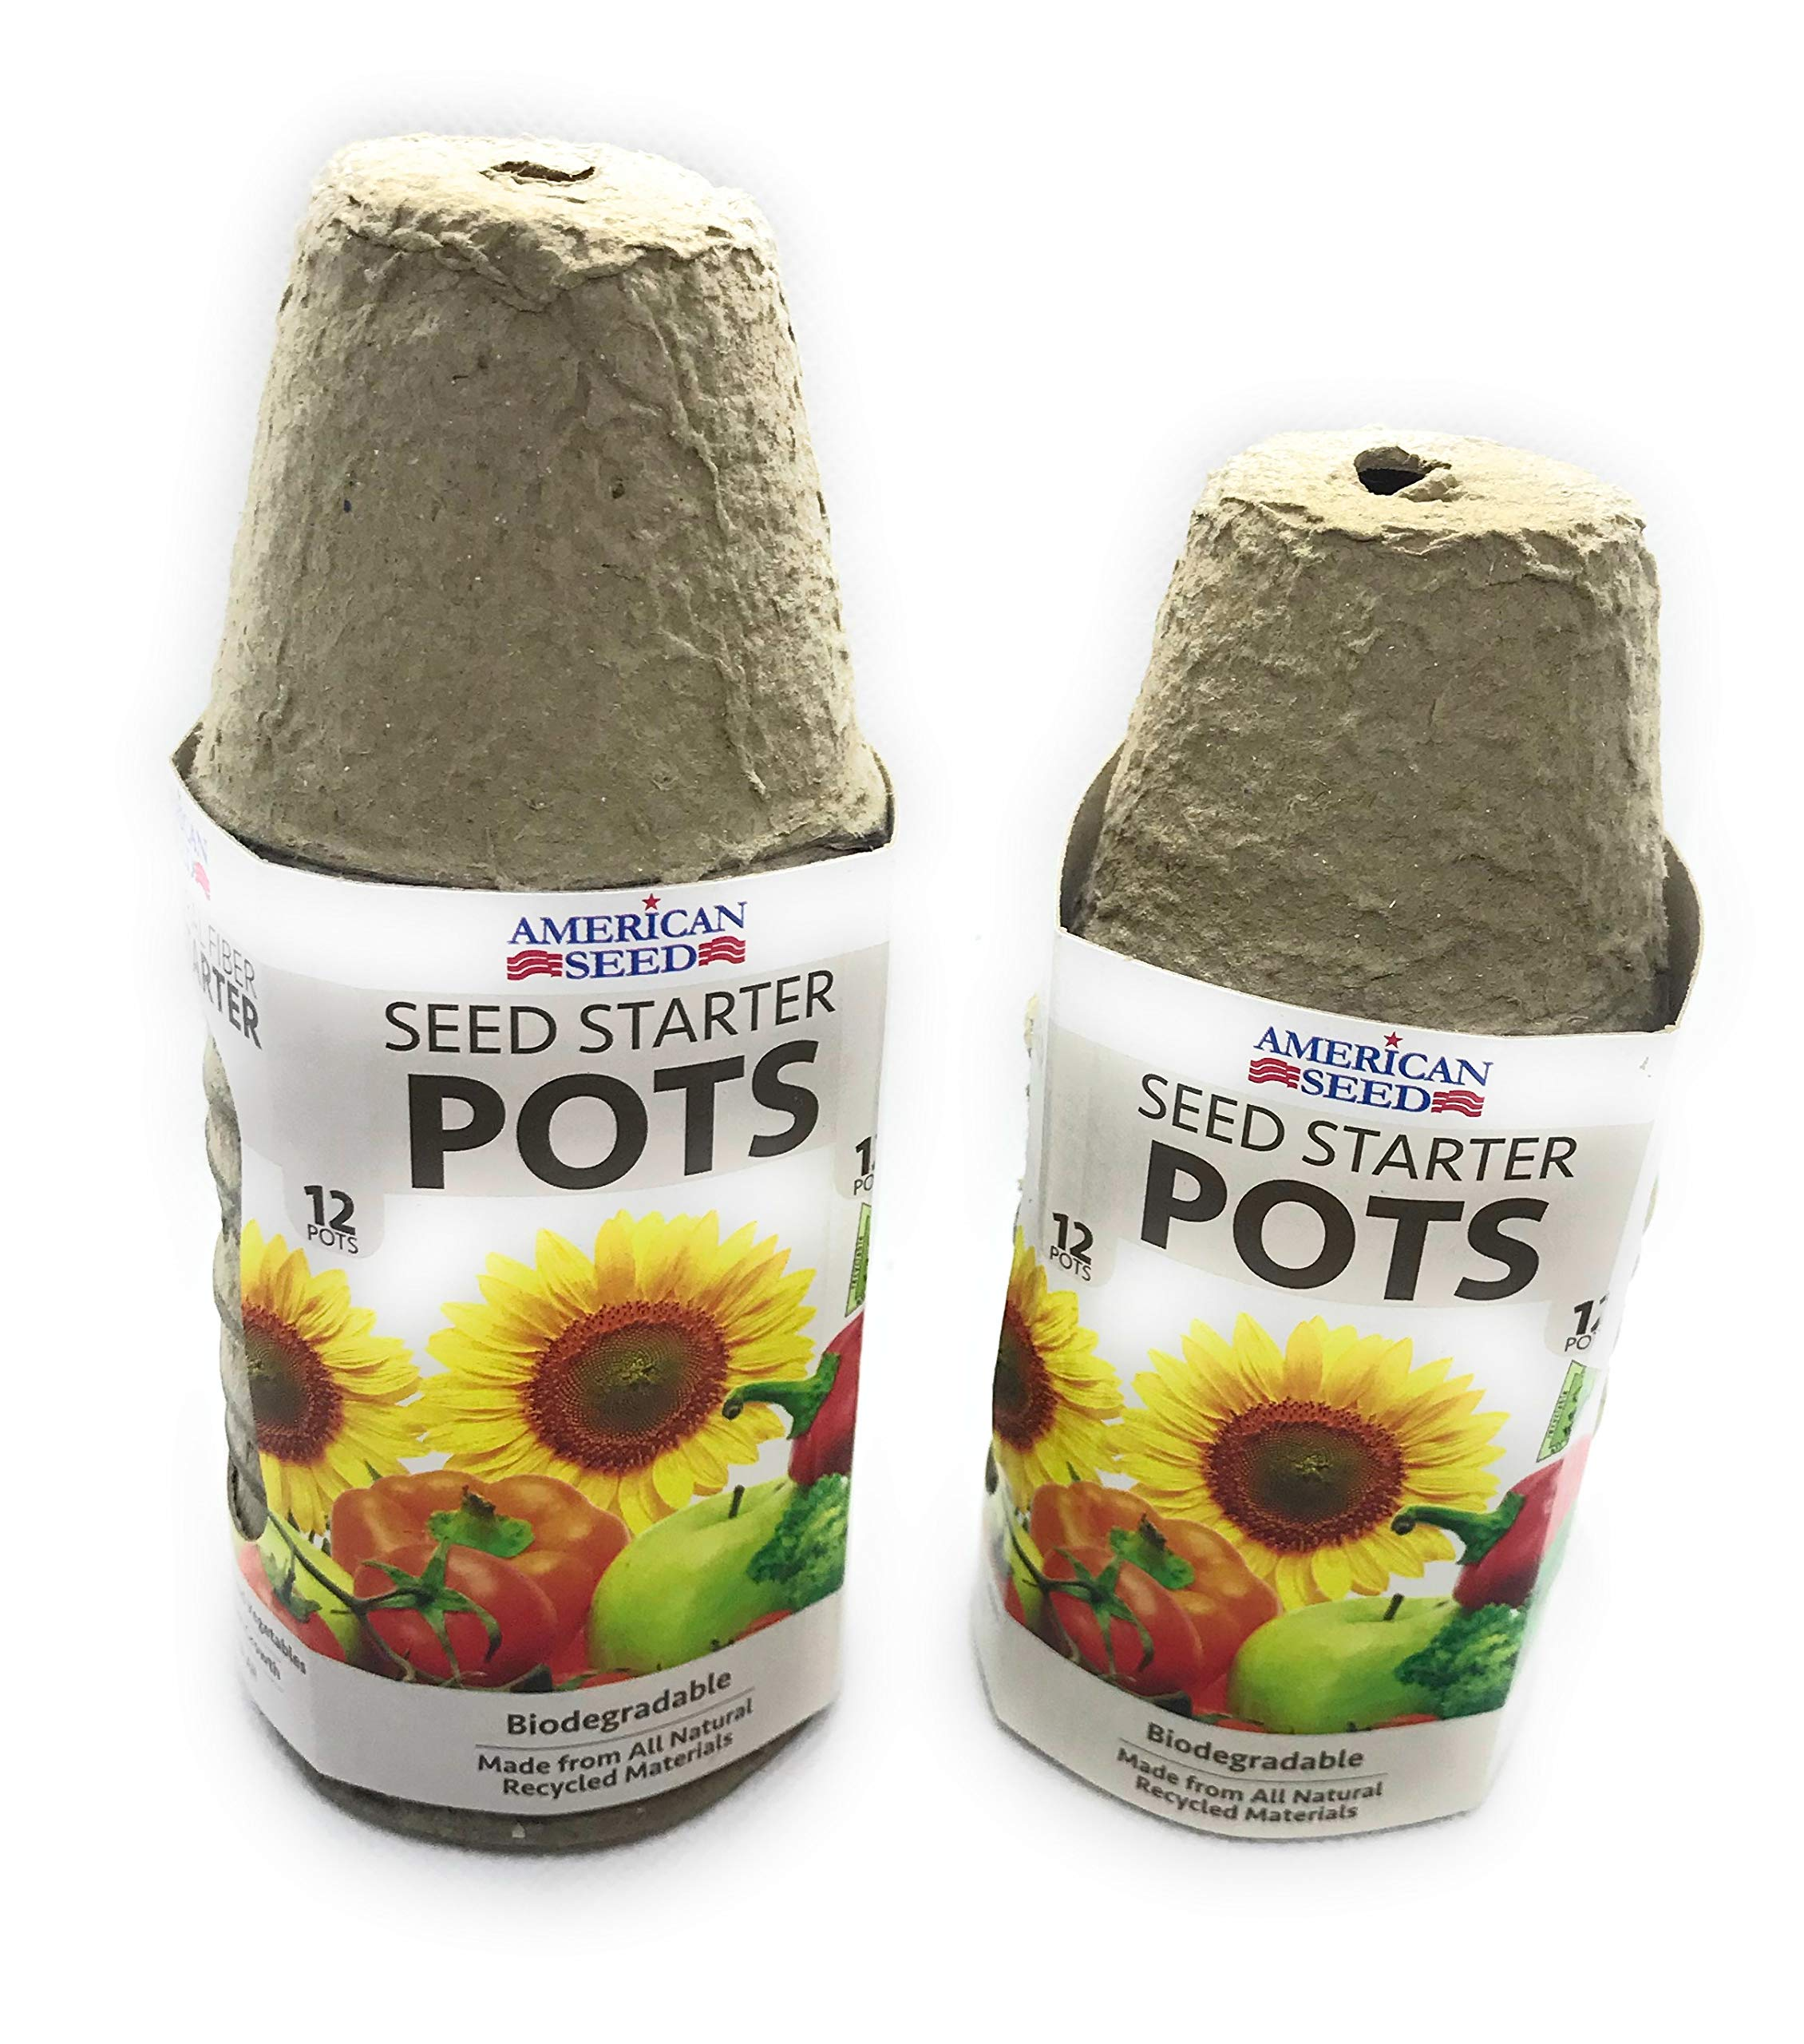 All Natura Fiber, Organic, Seed Starter Pots - 2 sets of 12 for total 24 Count